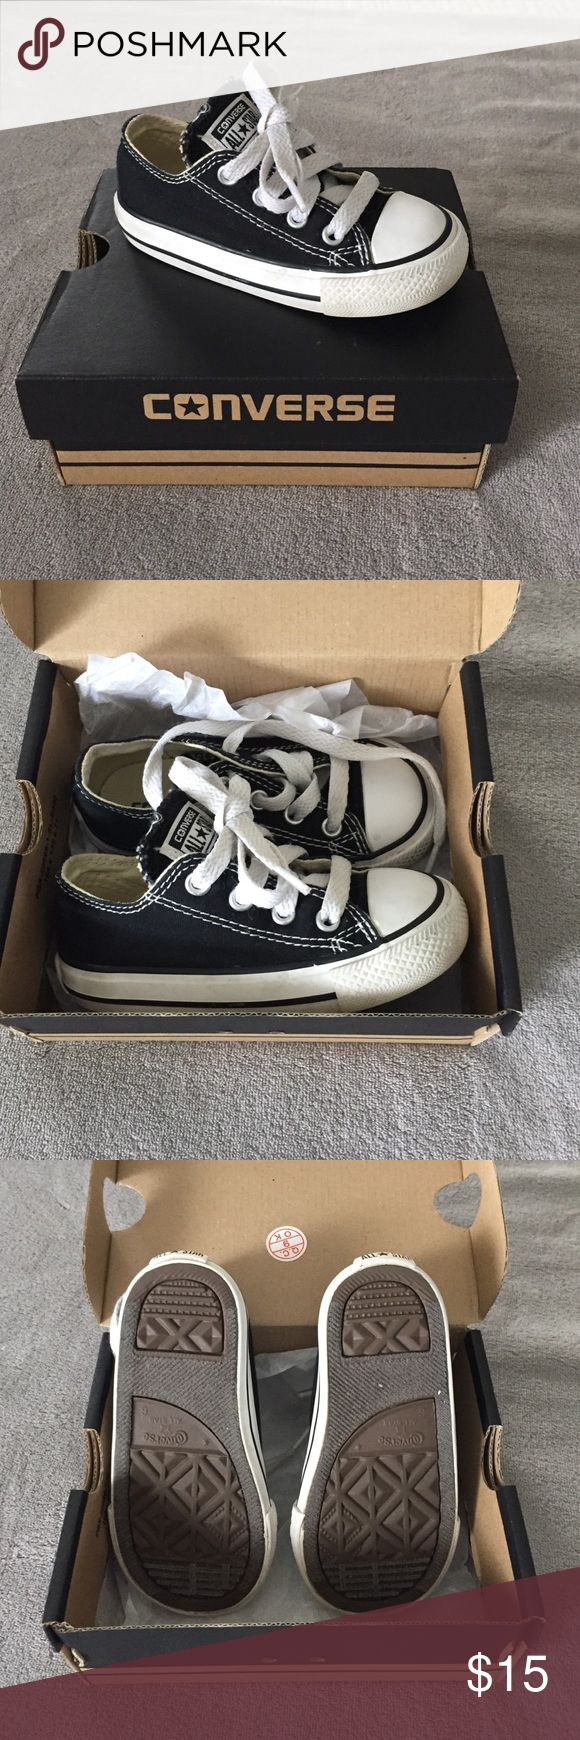 Baby Chuck Taylors Converse All Star Chuck Taylors. Like new, in box. Black and white. Size 6 infants. Converse Shoes Sneakers